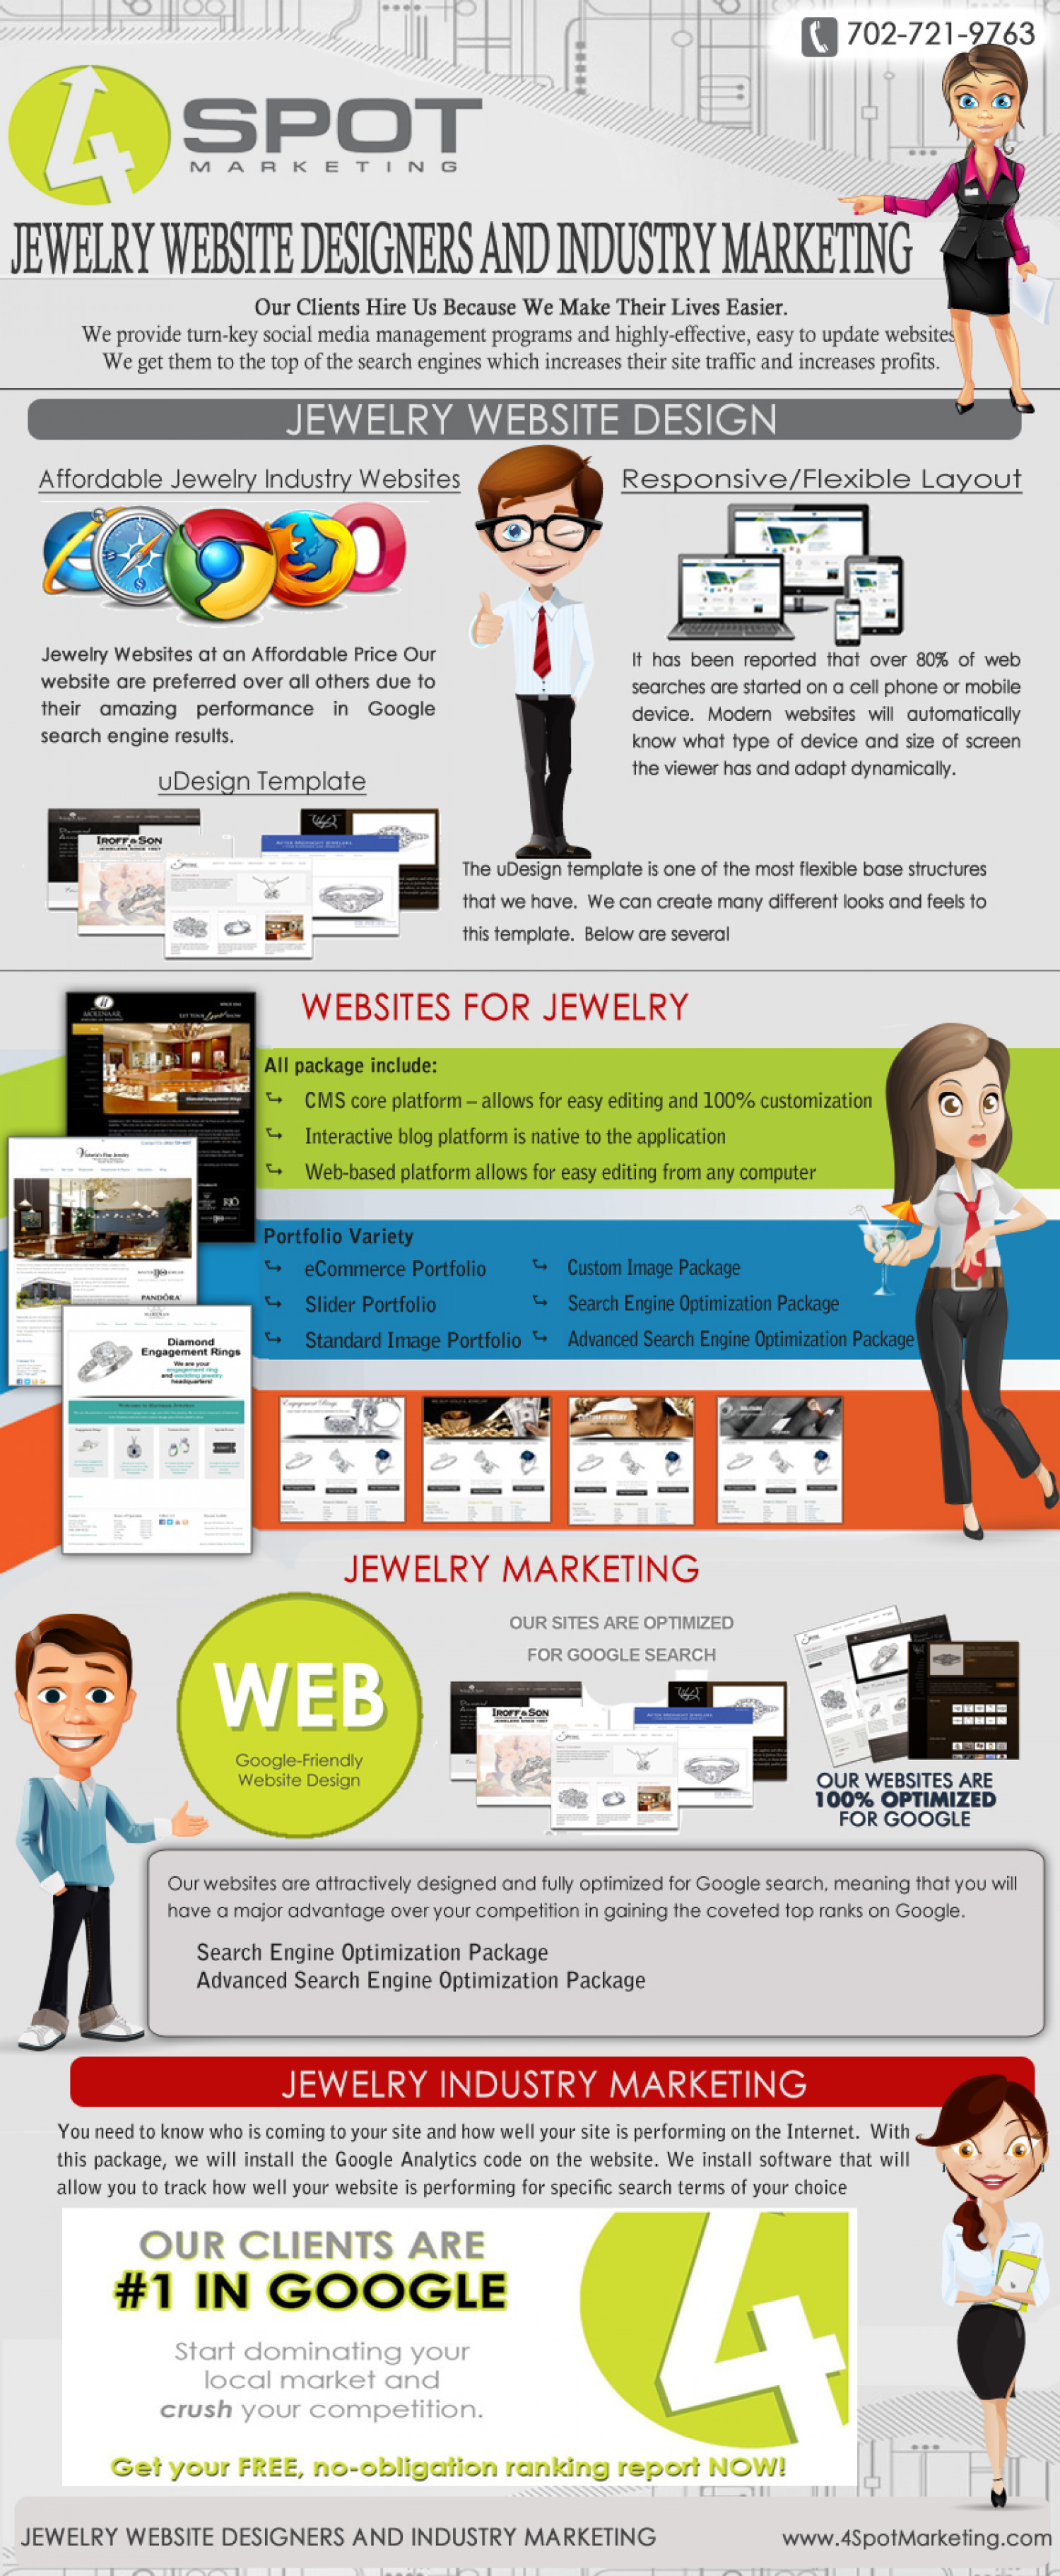 Jewelry Website Designers And Industry Marketing Infographic